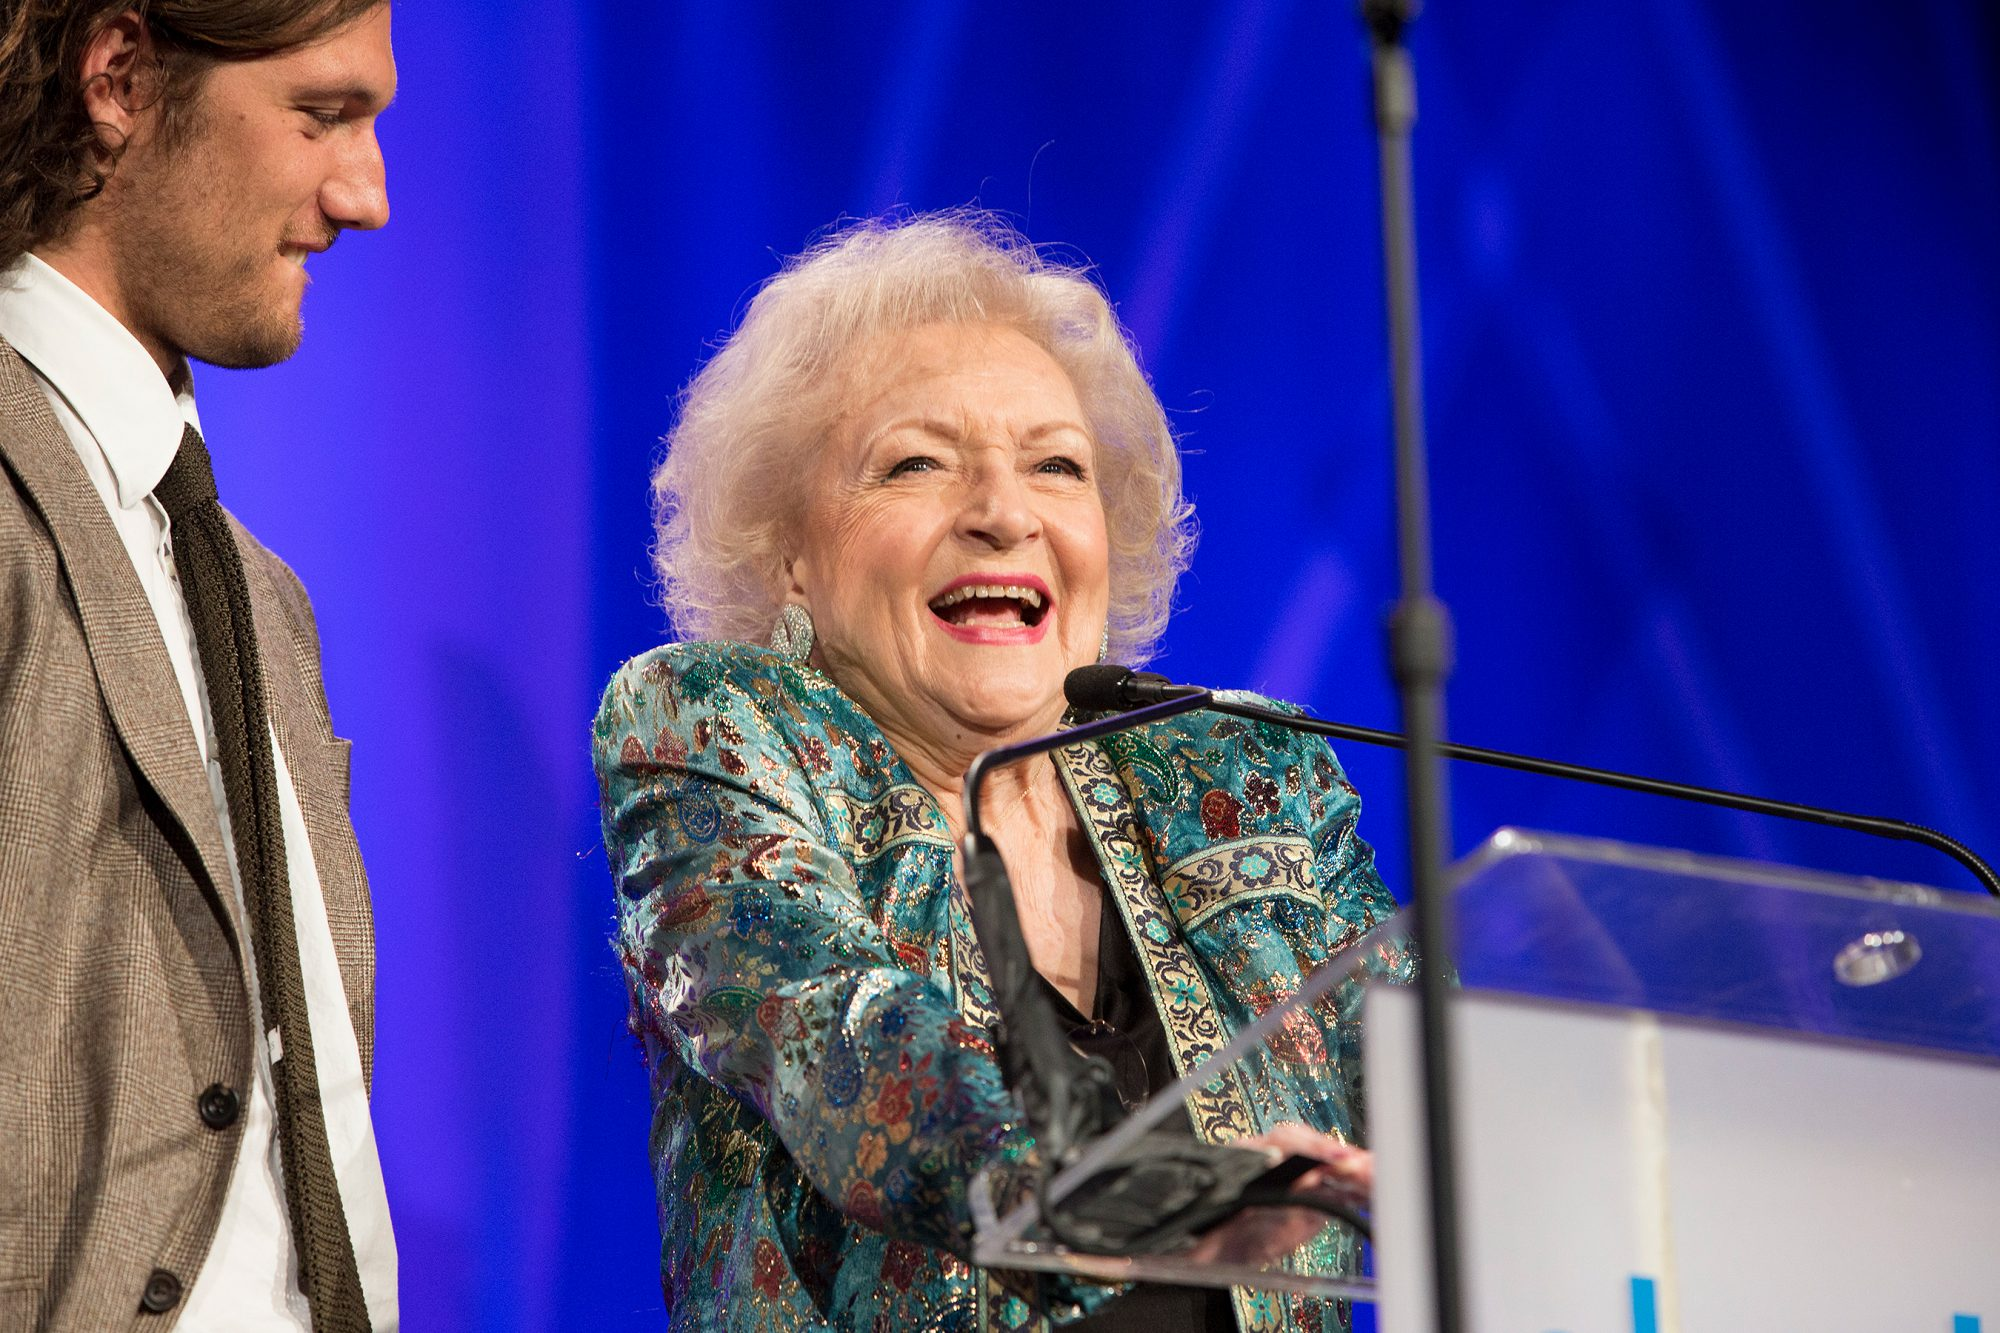 2013: Betty White comes out for marriage equality